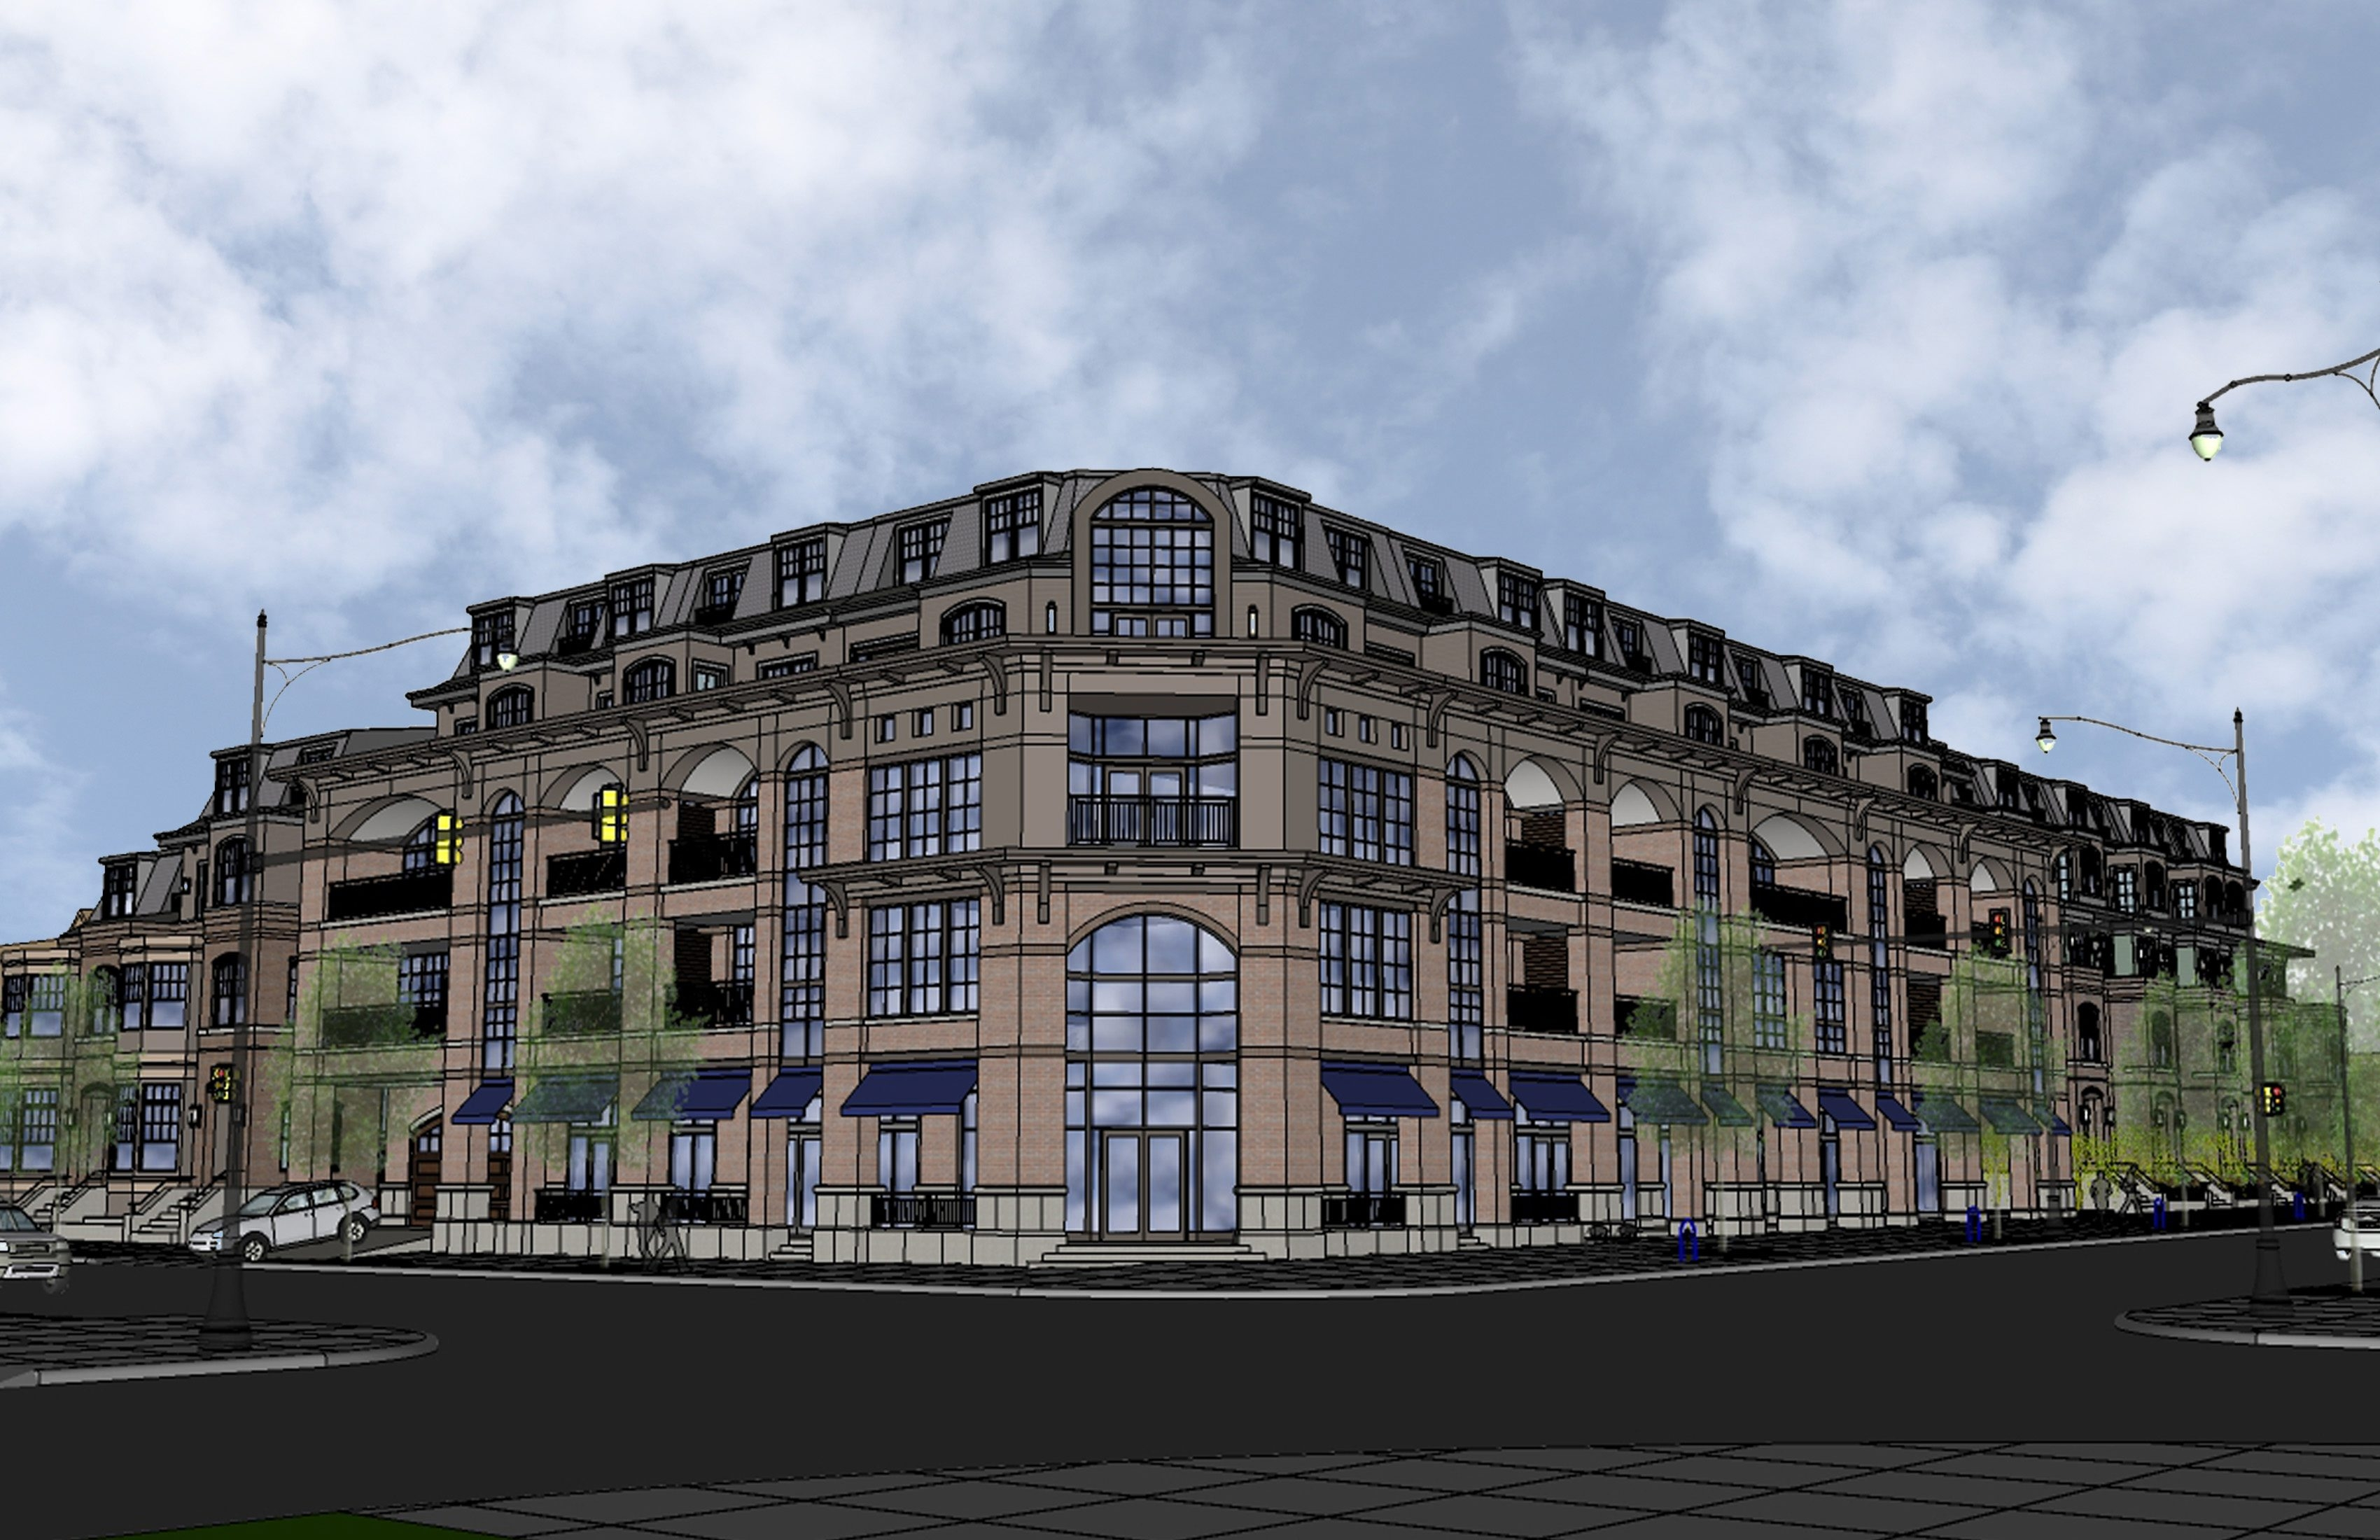 An architectural rendering of the five-story Elmwood condominiums proposed for Elmwood and Forest.